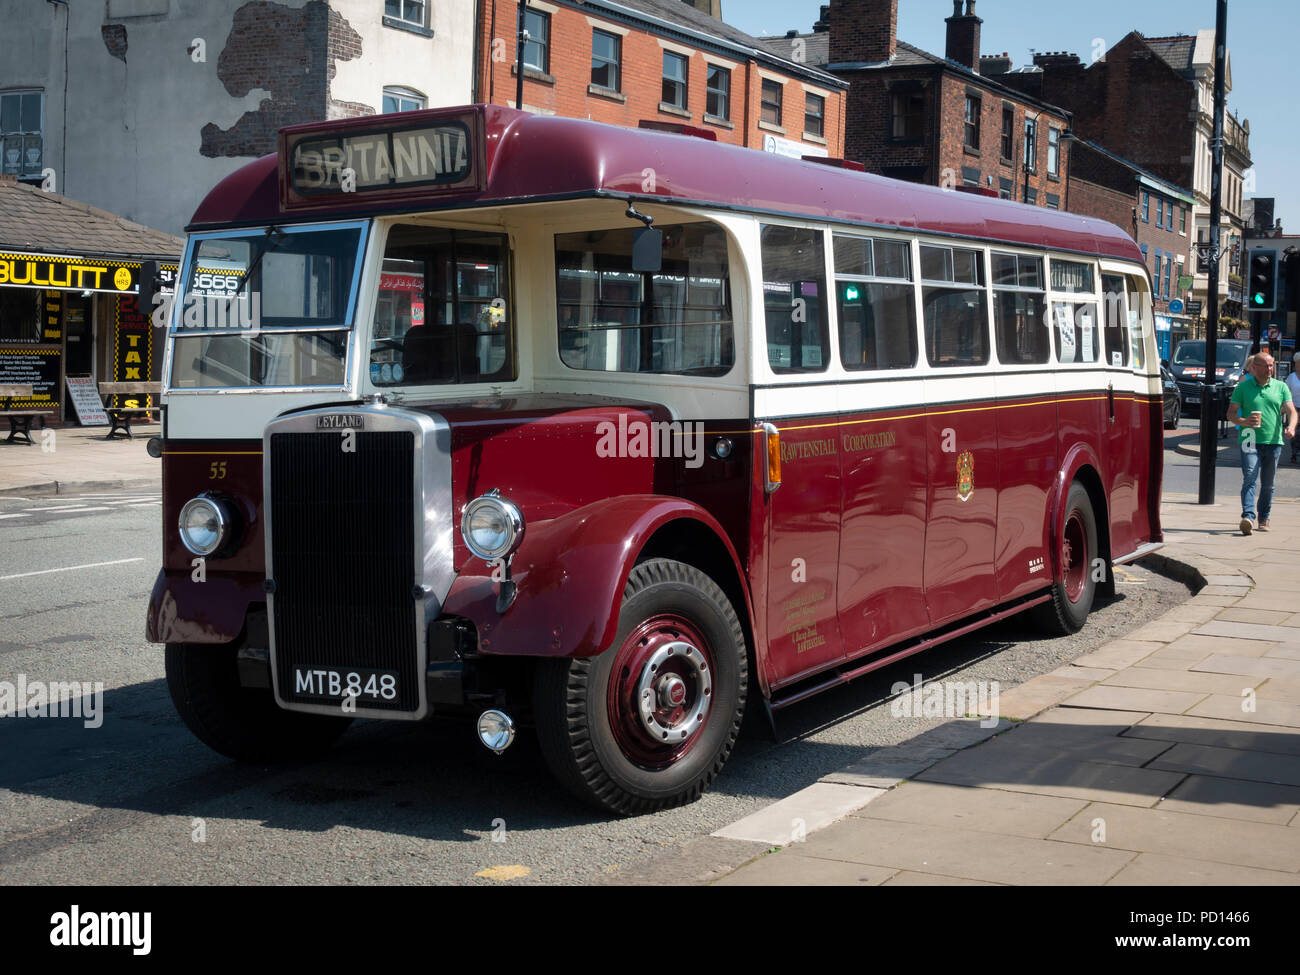 Rawtenstall Corporation Transport 5 Bus in Bury, England. - Stock Image